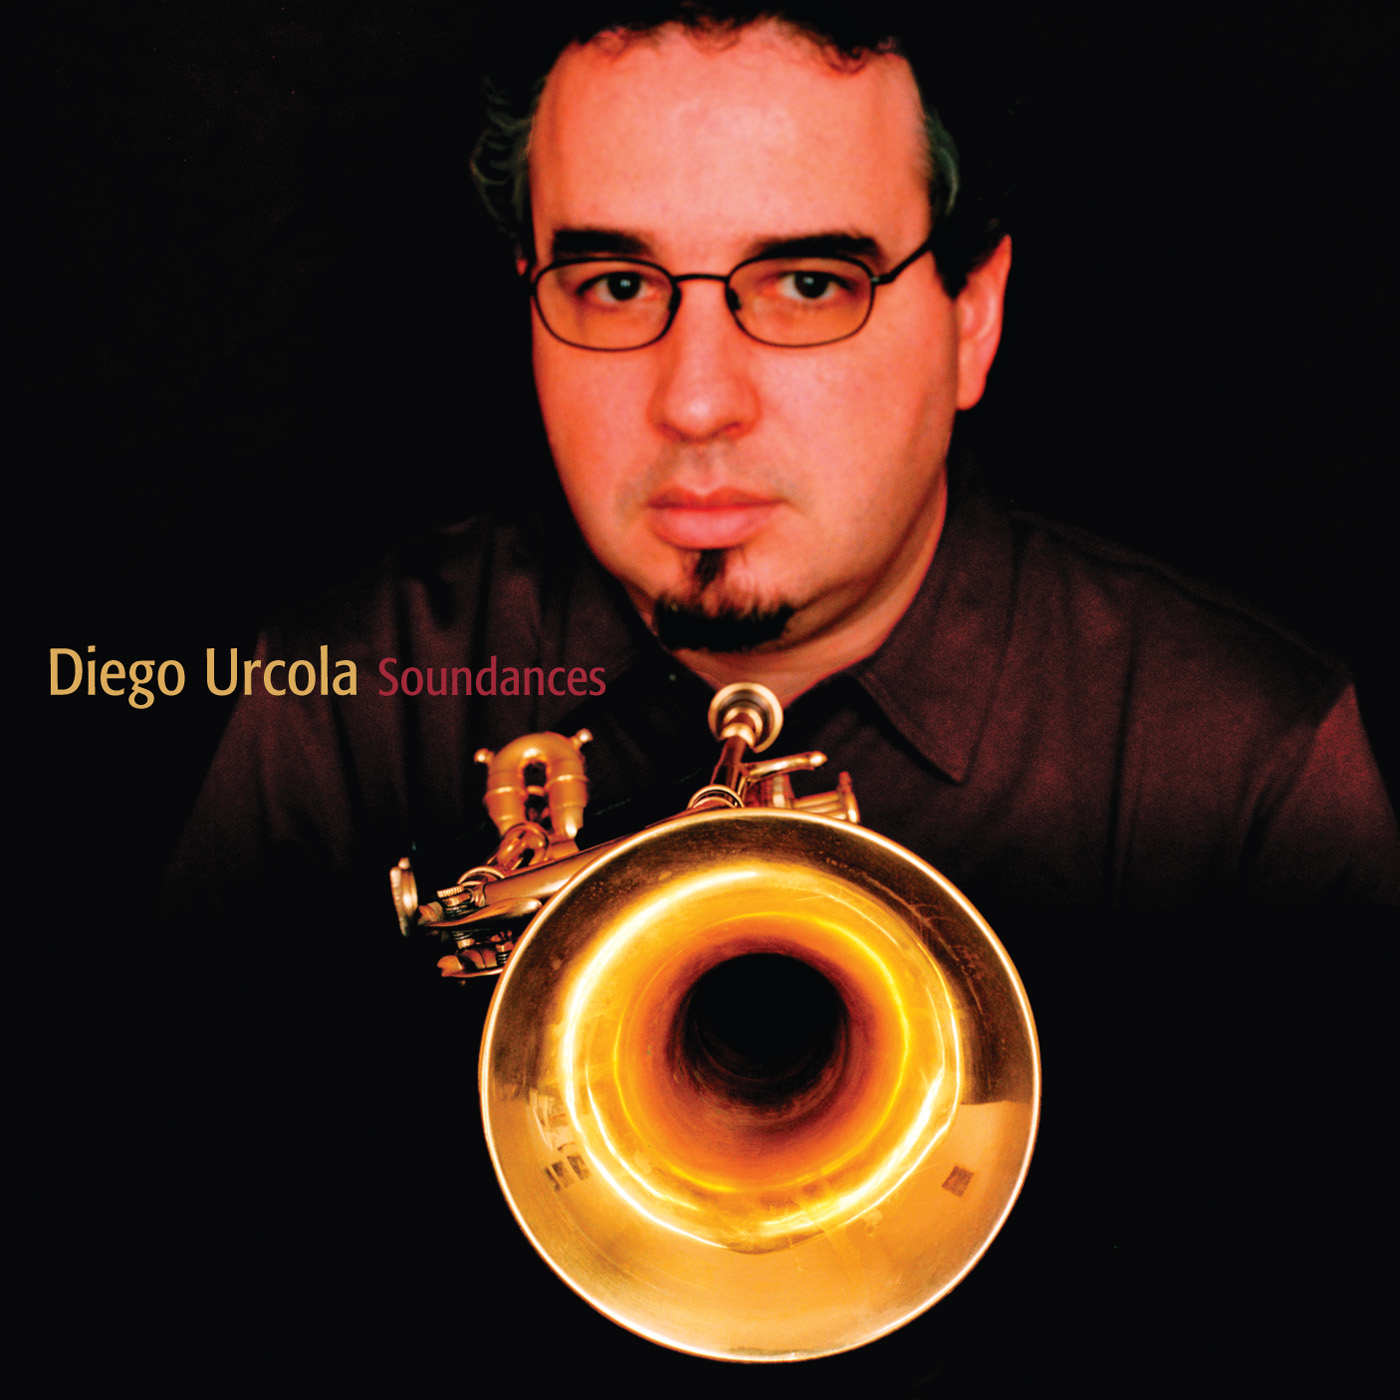 Soundances by Diego Urcola cover